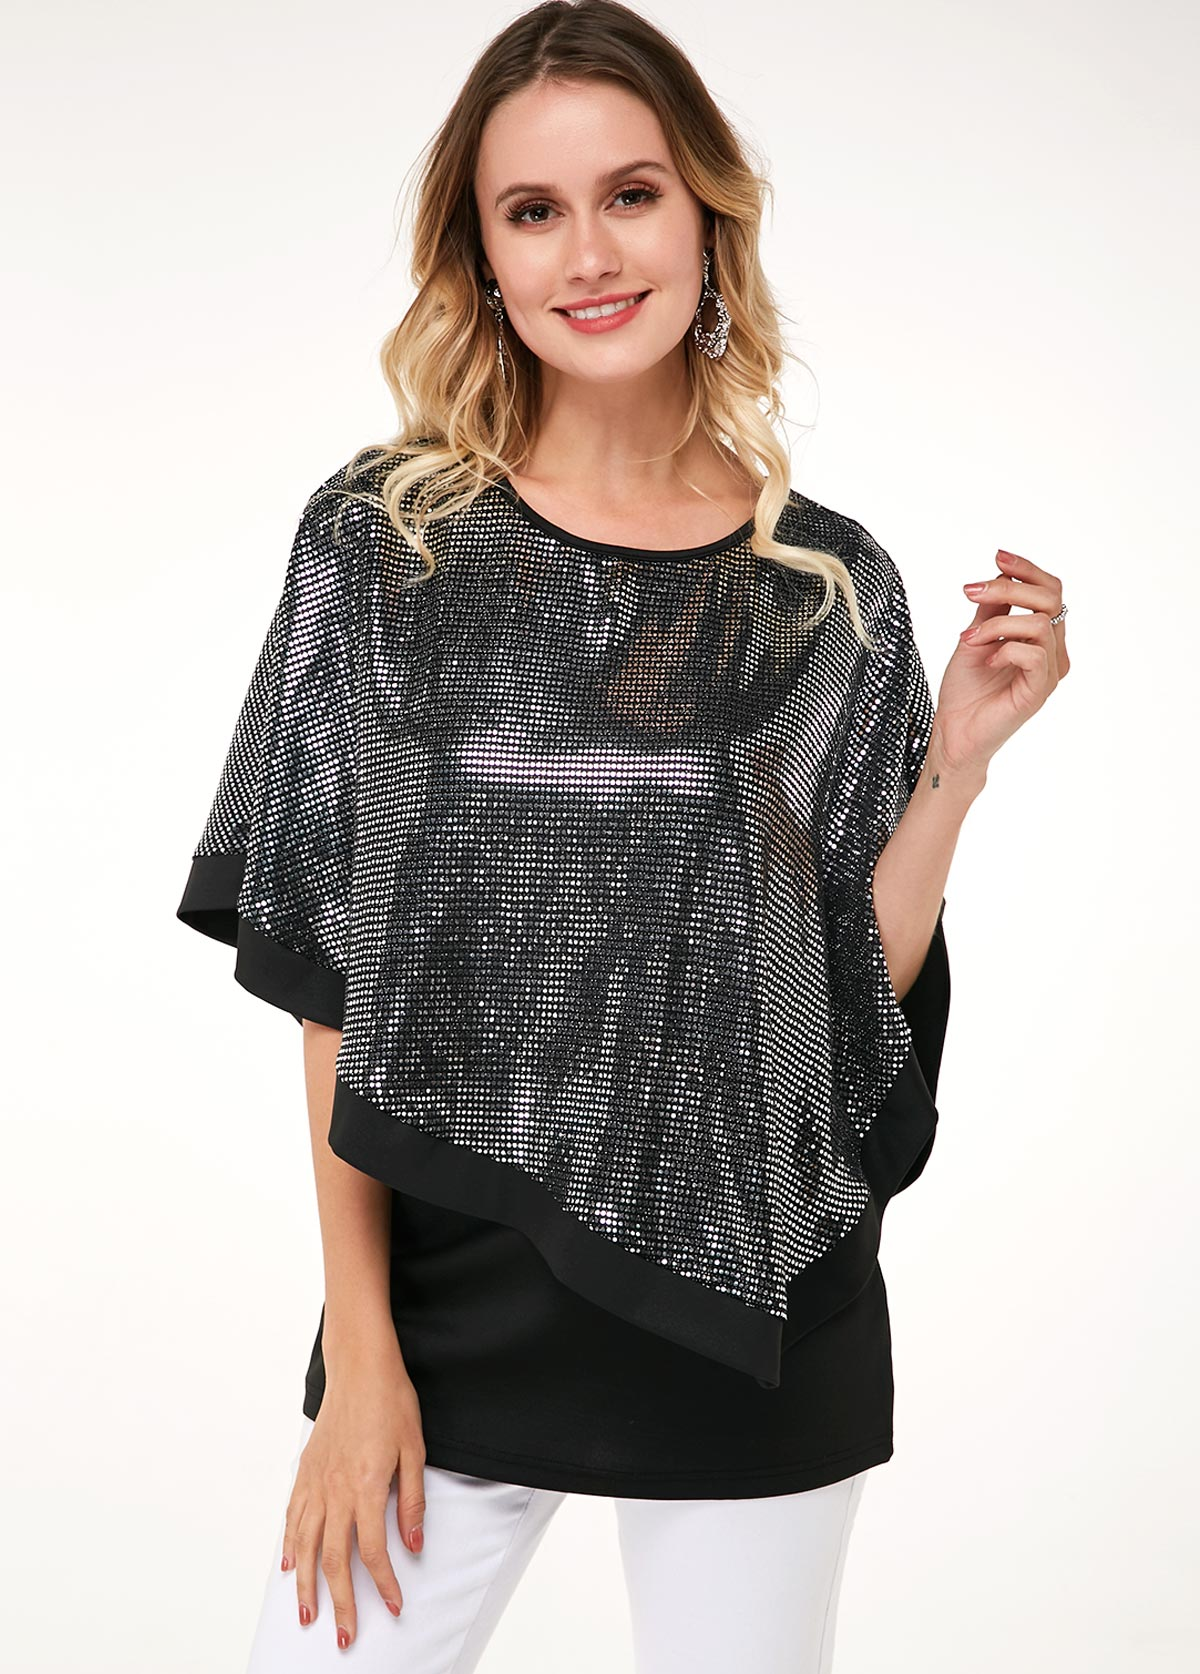 Black Tank Top and Sequin Cape T Shirt